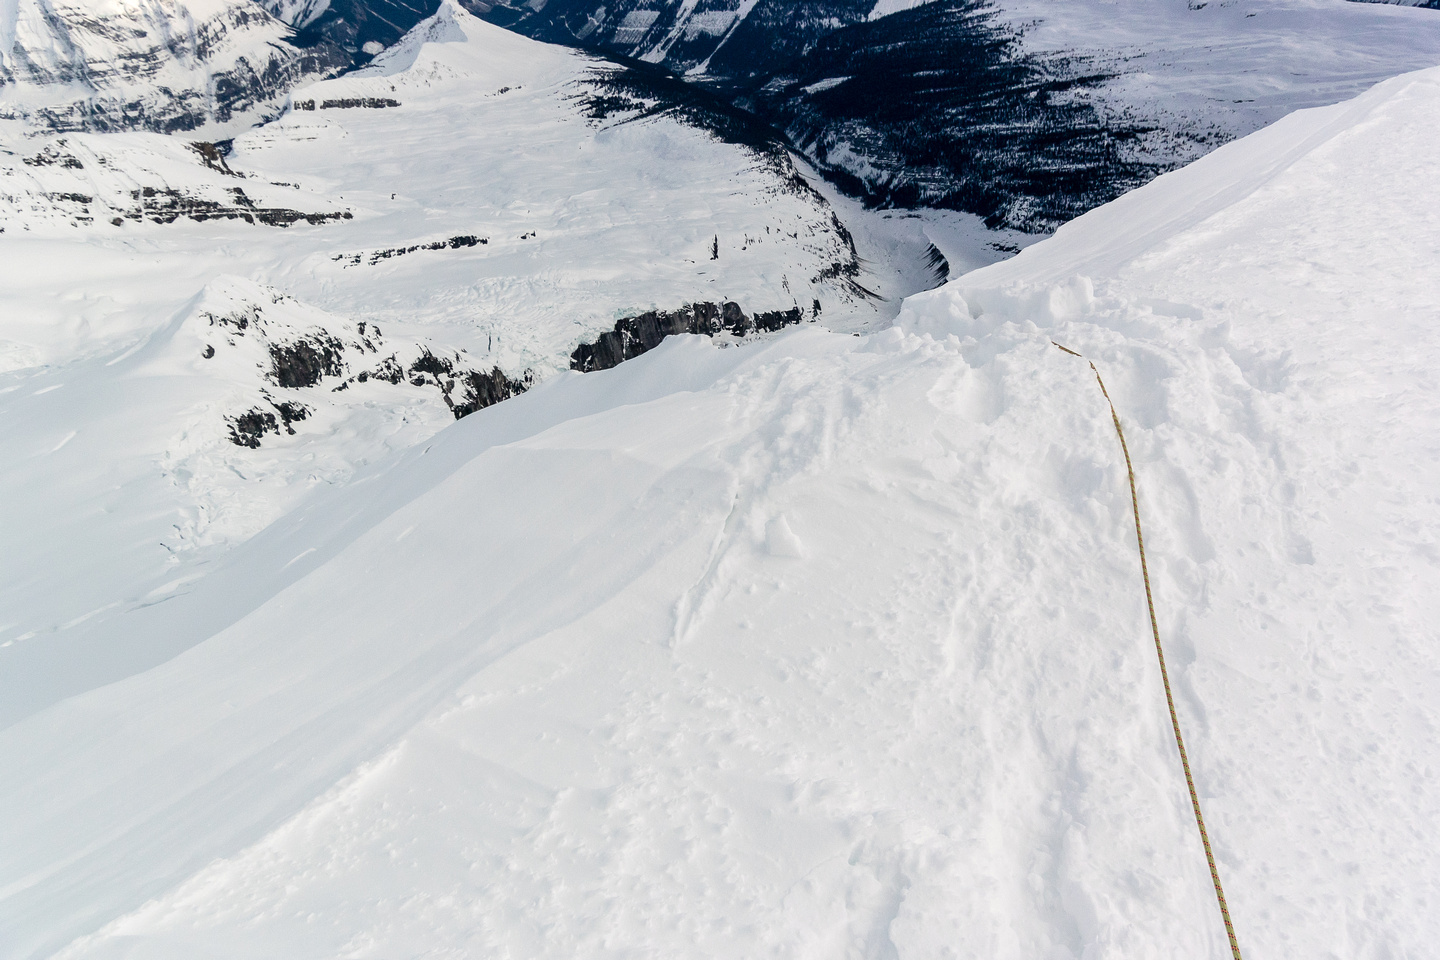 The rope disappears over the edge as I approach the lip of the upper east face.